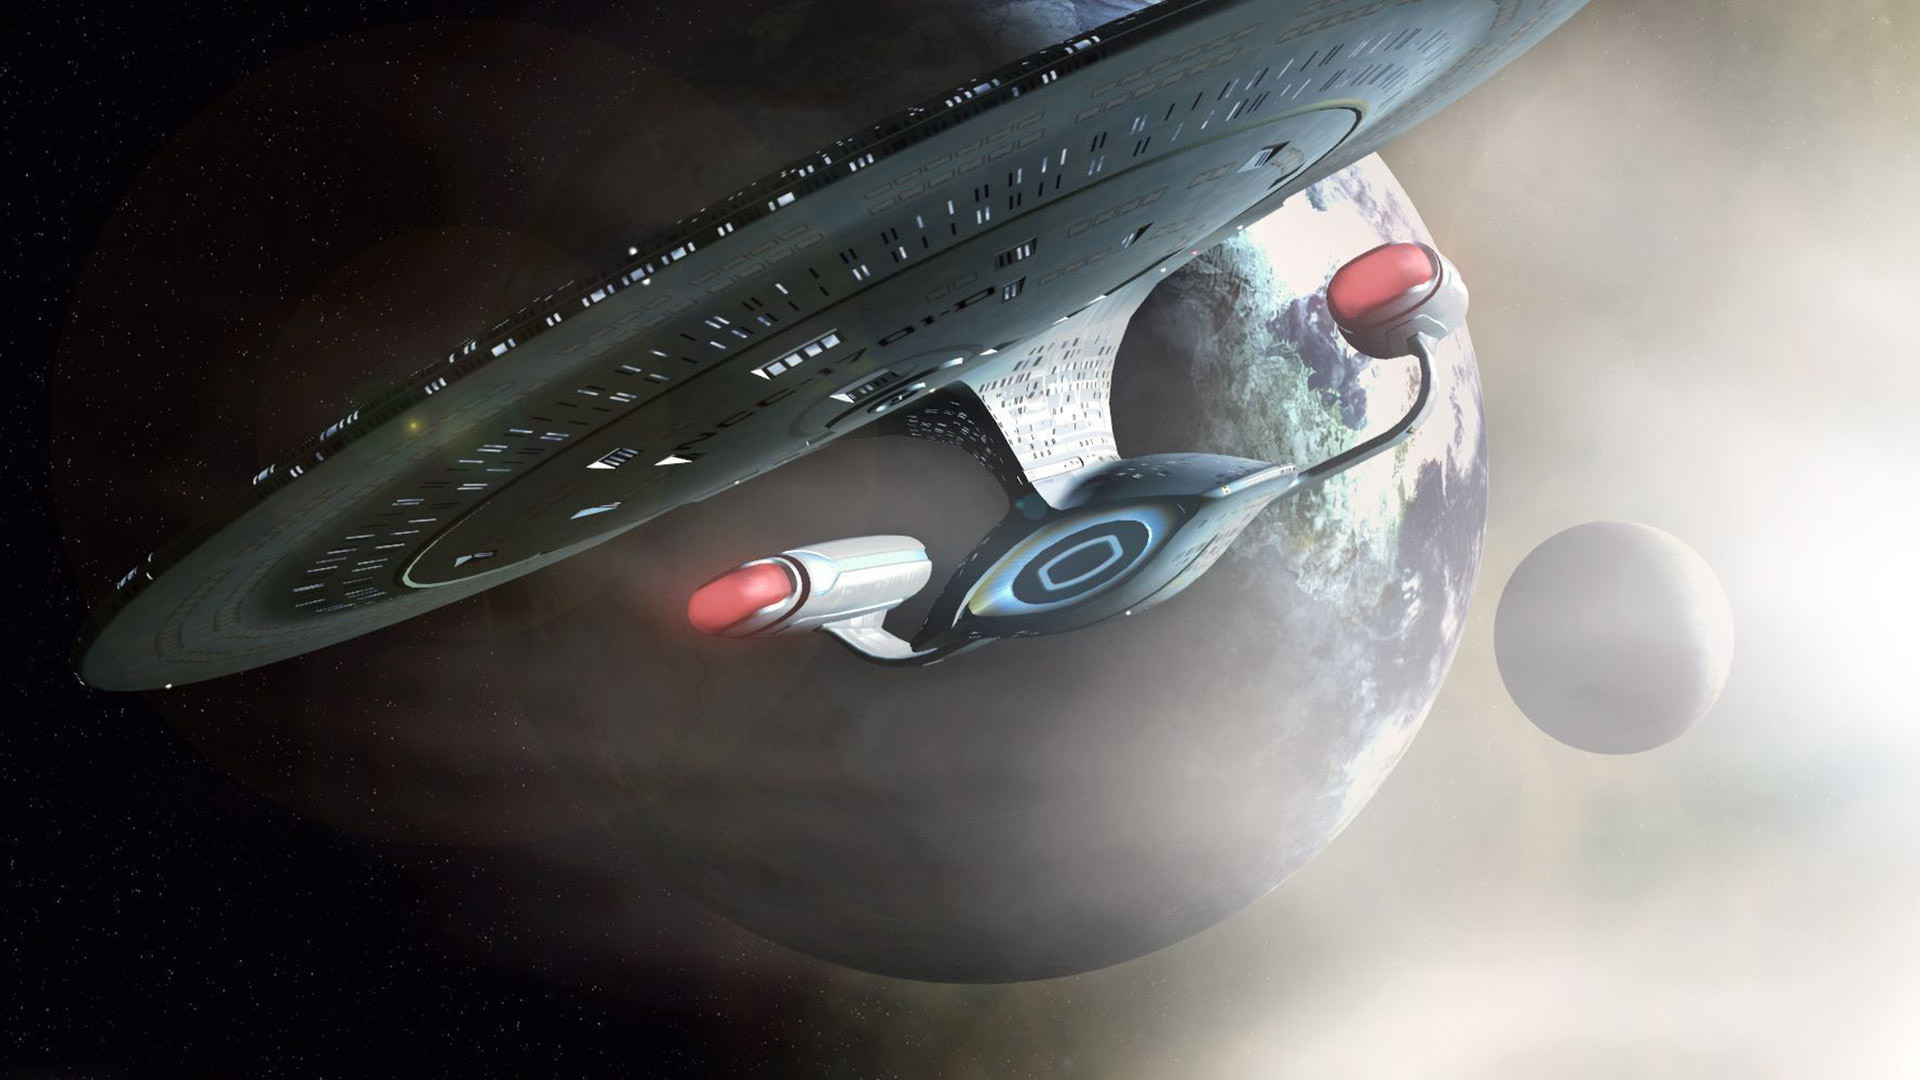 1920x1080 The Galaxy class USS Enterprise NCC 1701 D from the Star Trek Th Next  Generation.